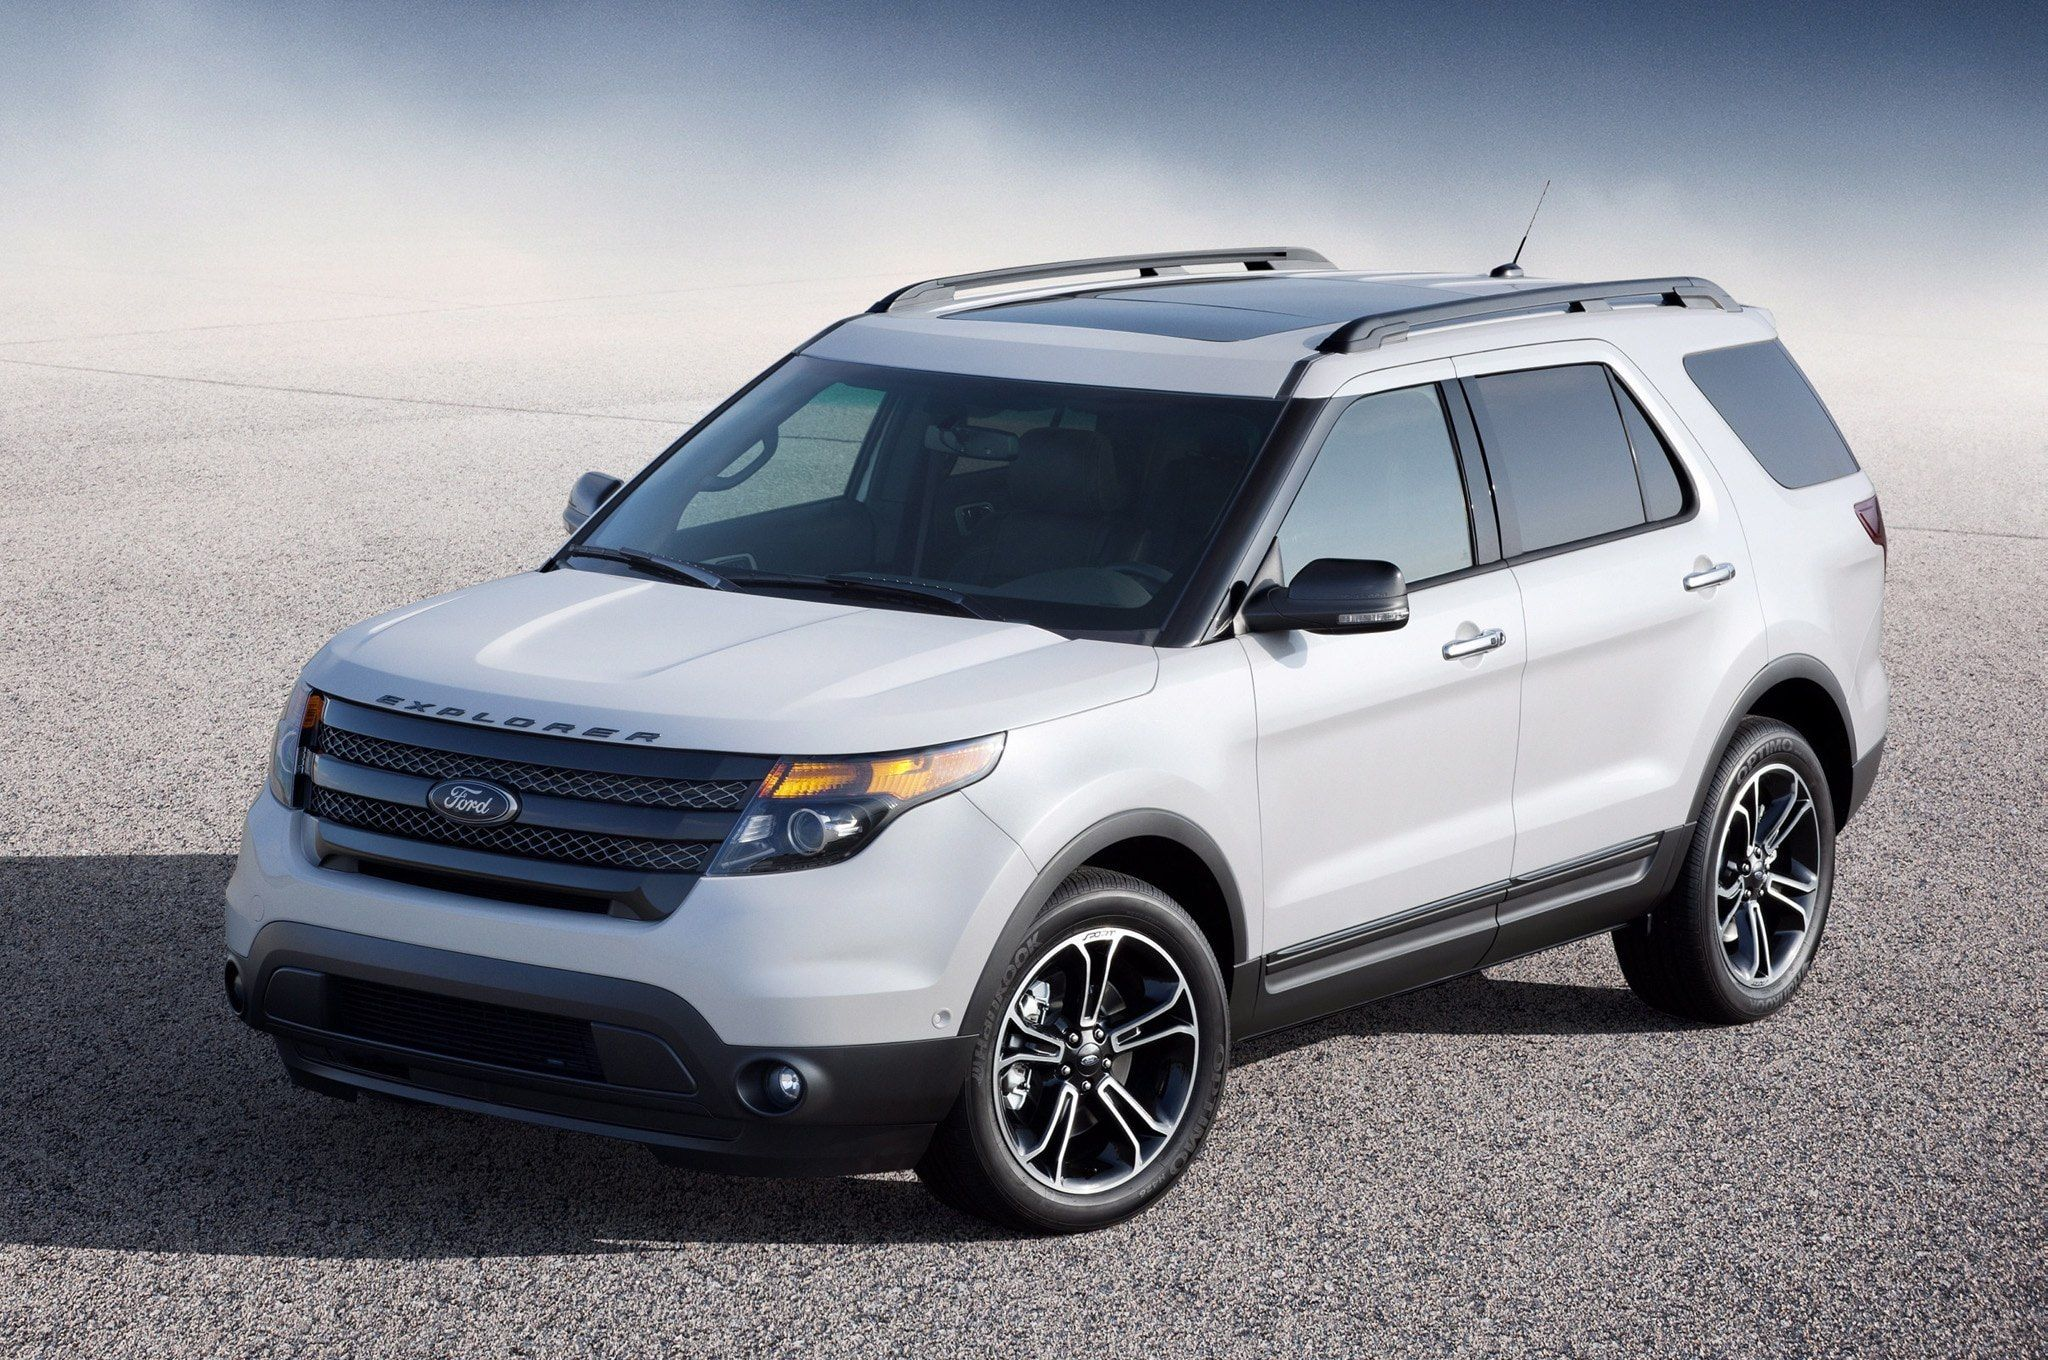 2013 Ford Explorer Xlt Towing Capacity Http Carenara Com 2013